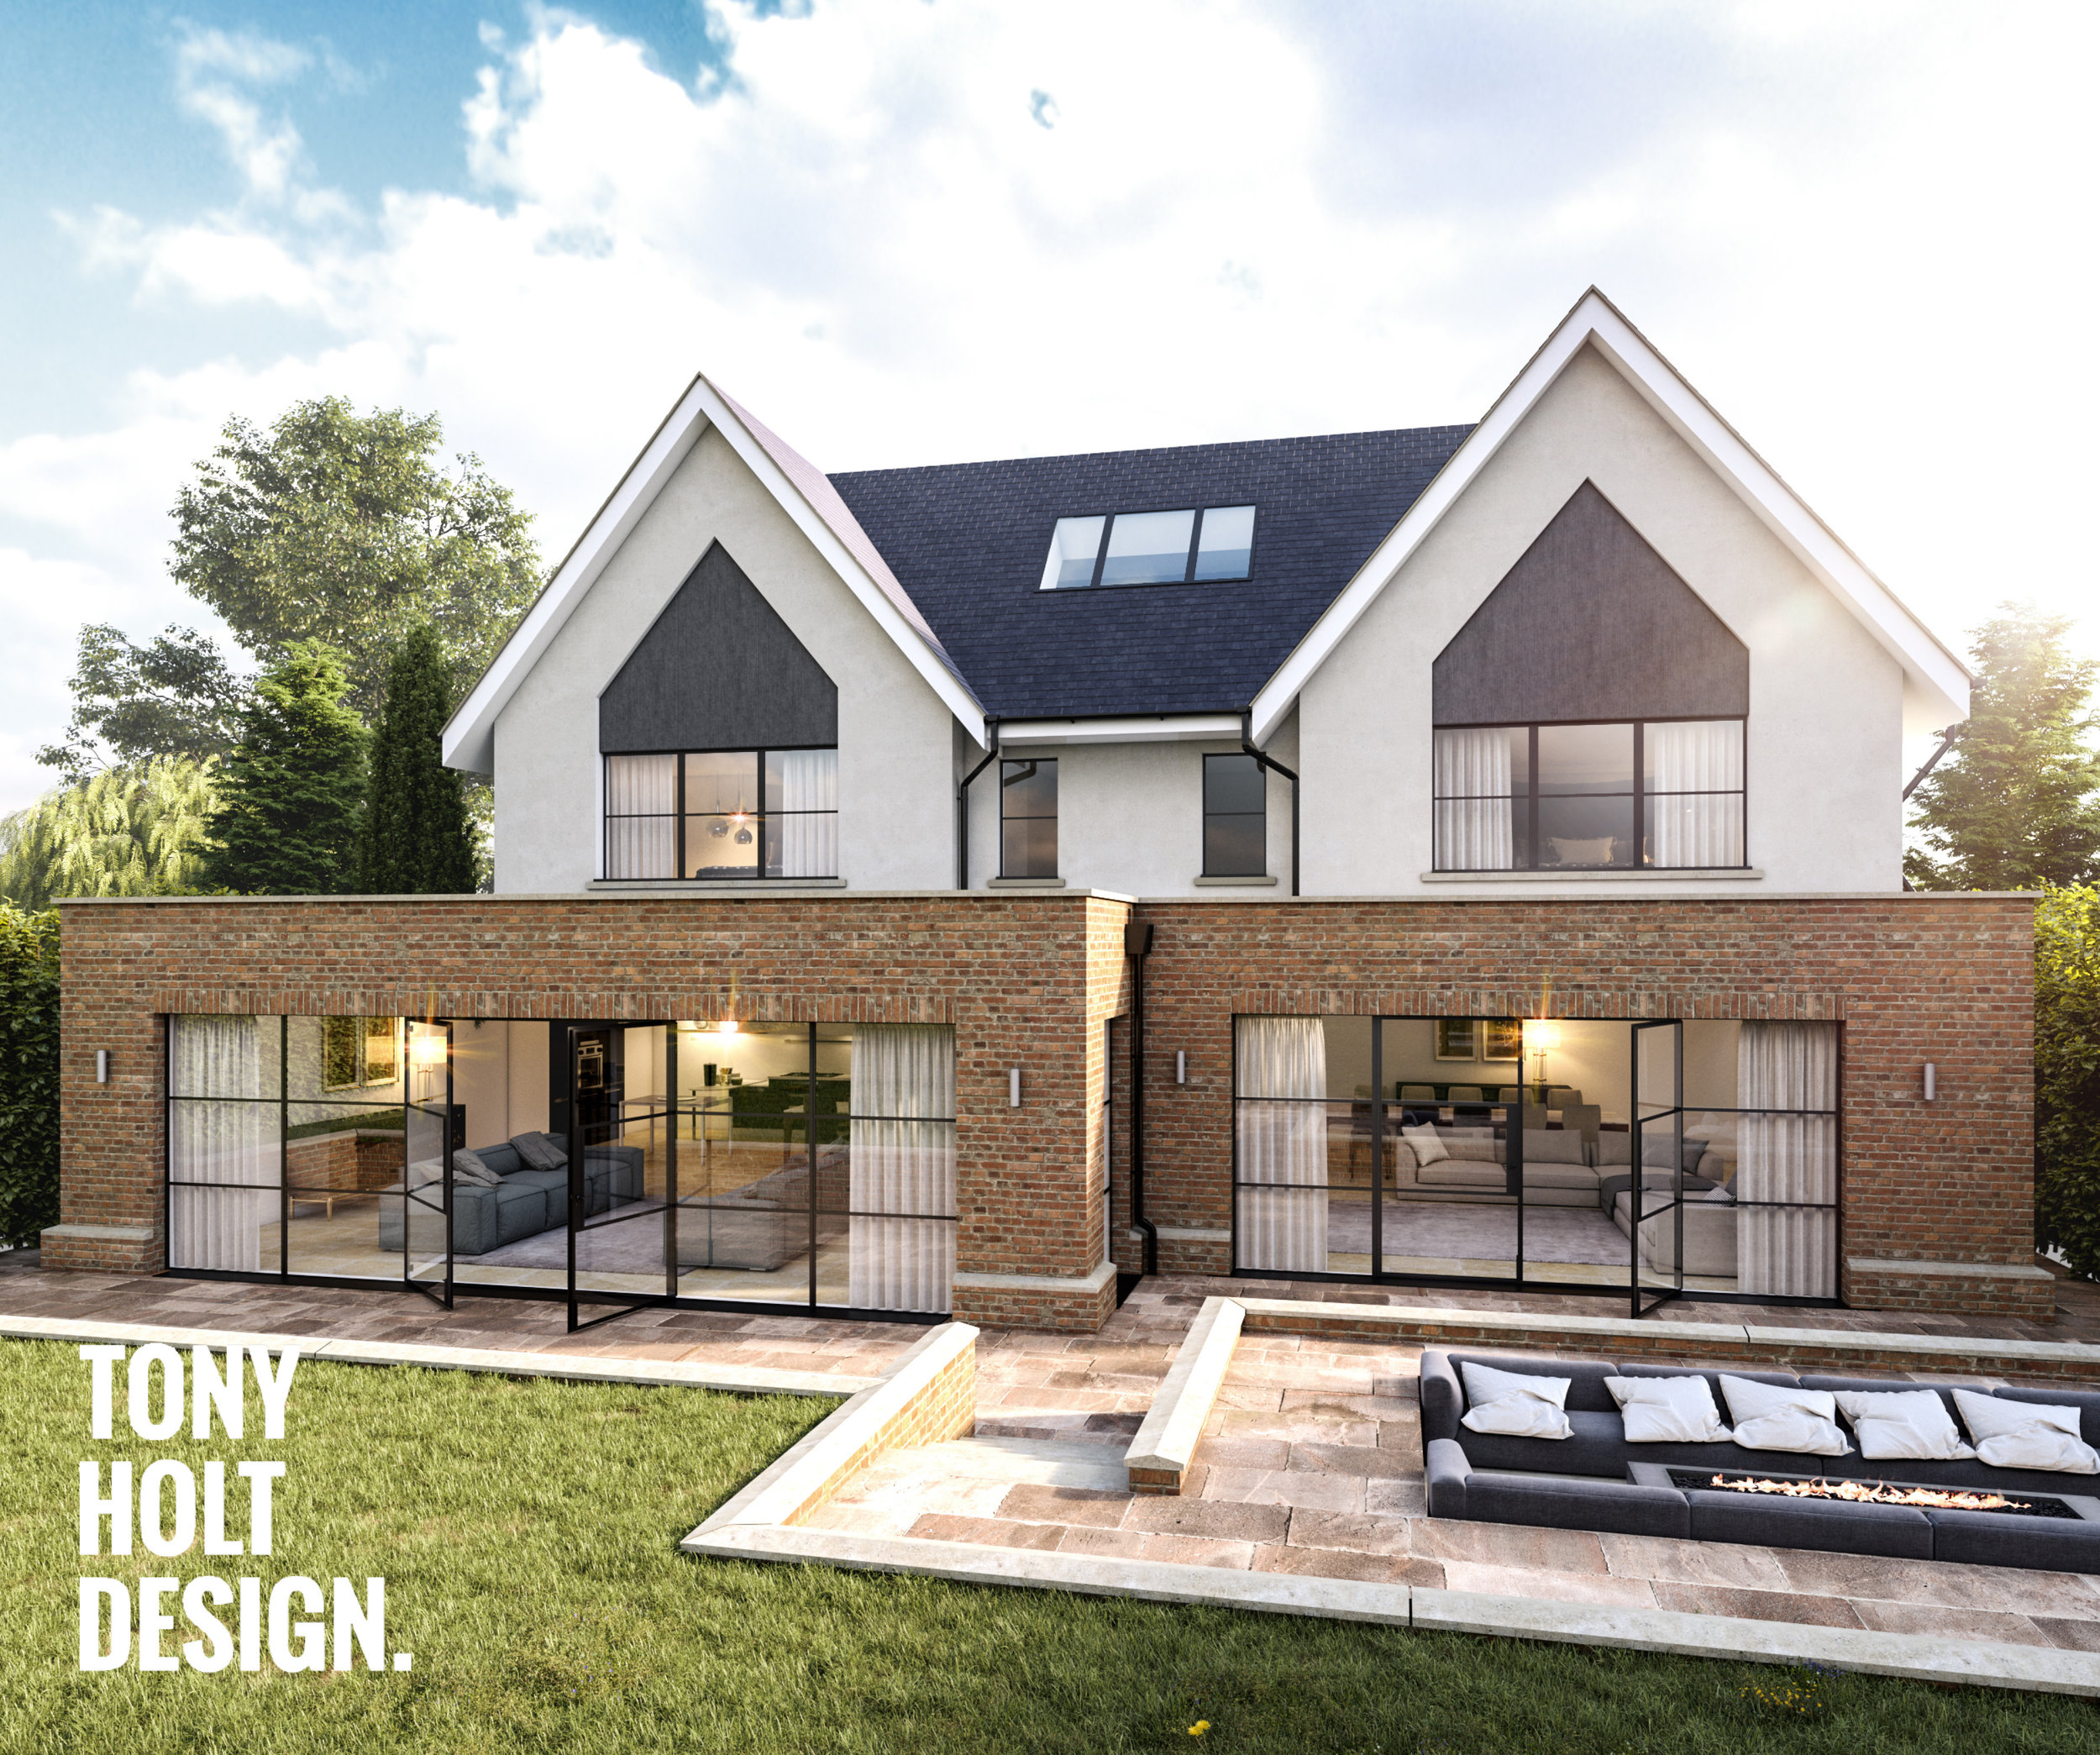 Tony Holt Design_Self Build_New Build_The Clump 02_CGI.jpg